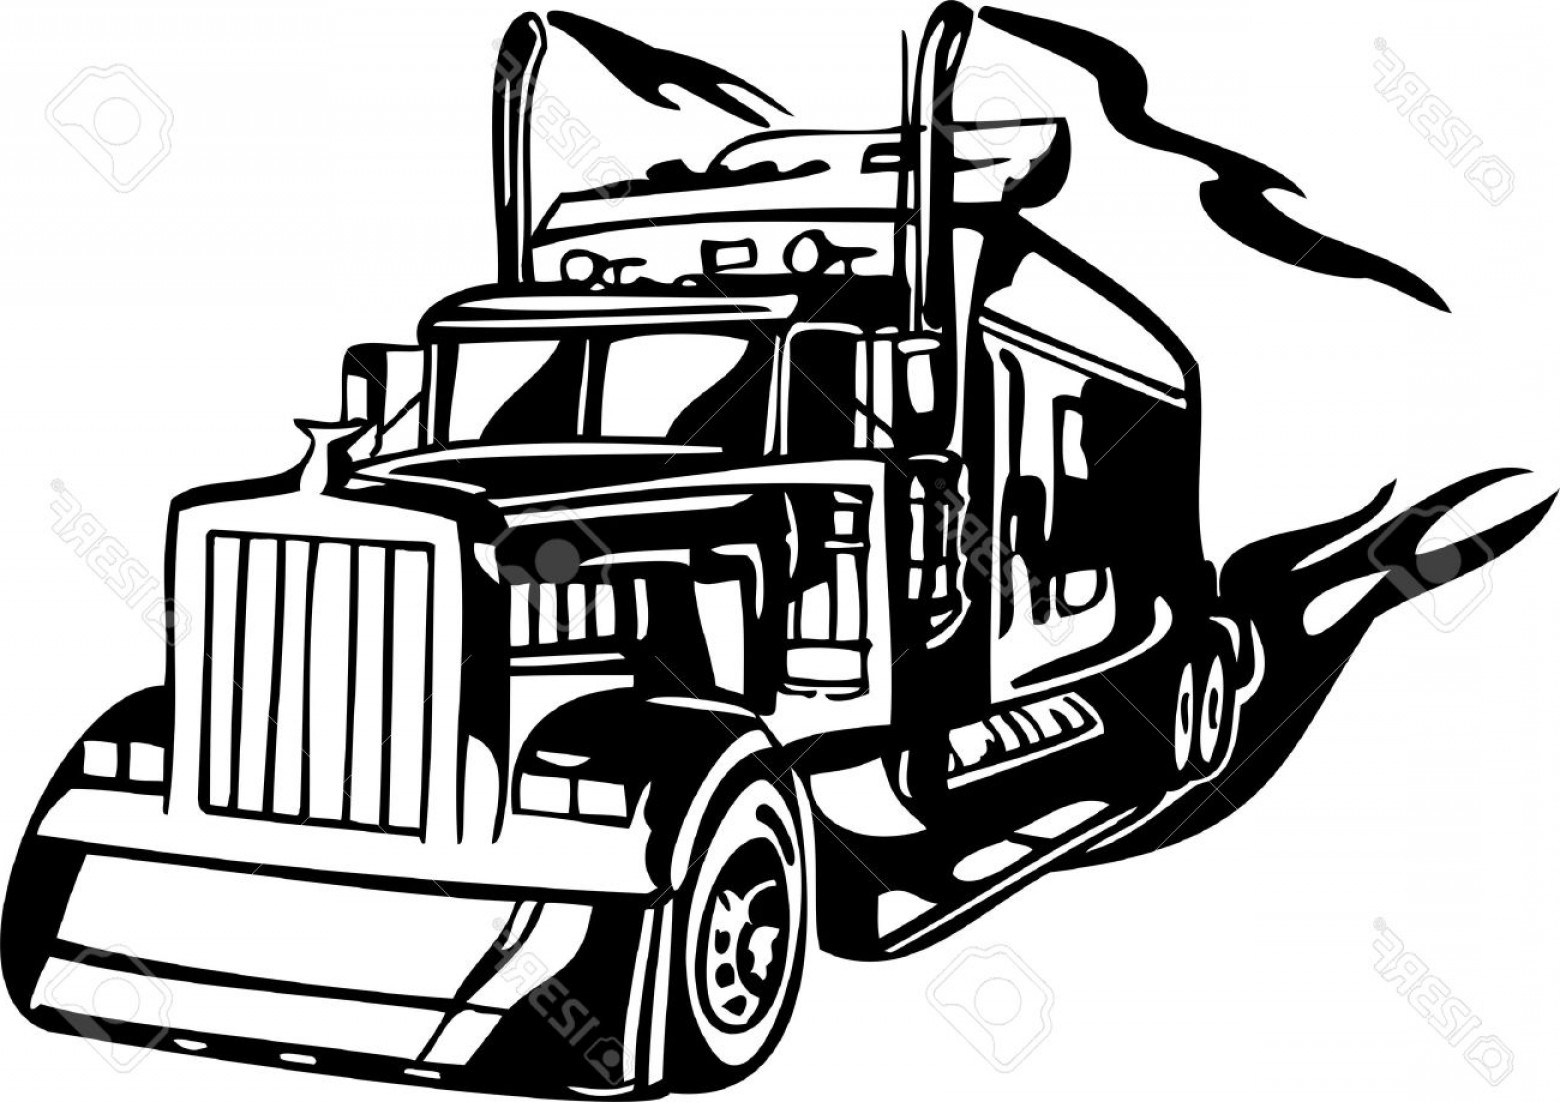 Vector Semi Tanker: Photoracing Trucks With Inclusion Of A Flames And Tribal Illustration Ready For Vinyl Cutting